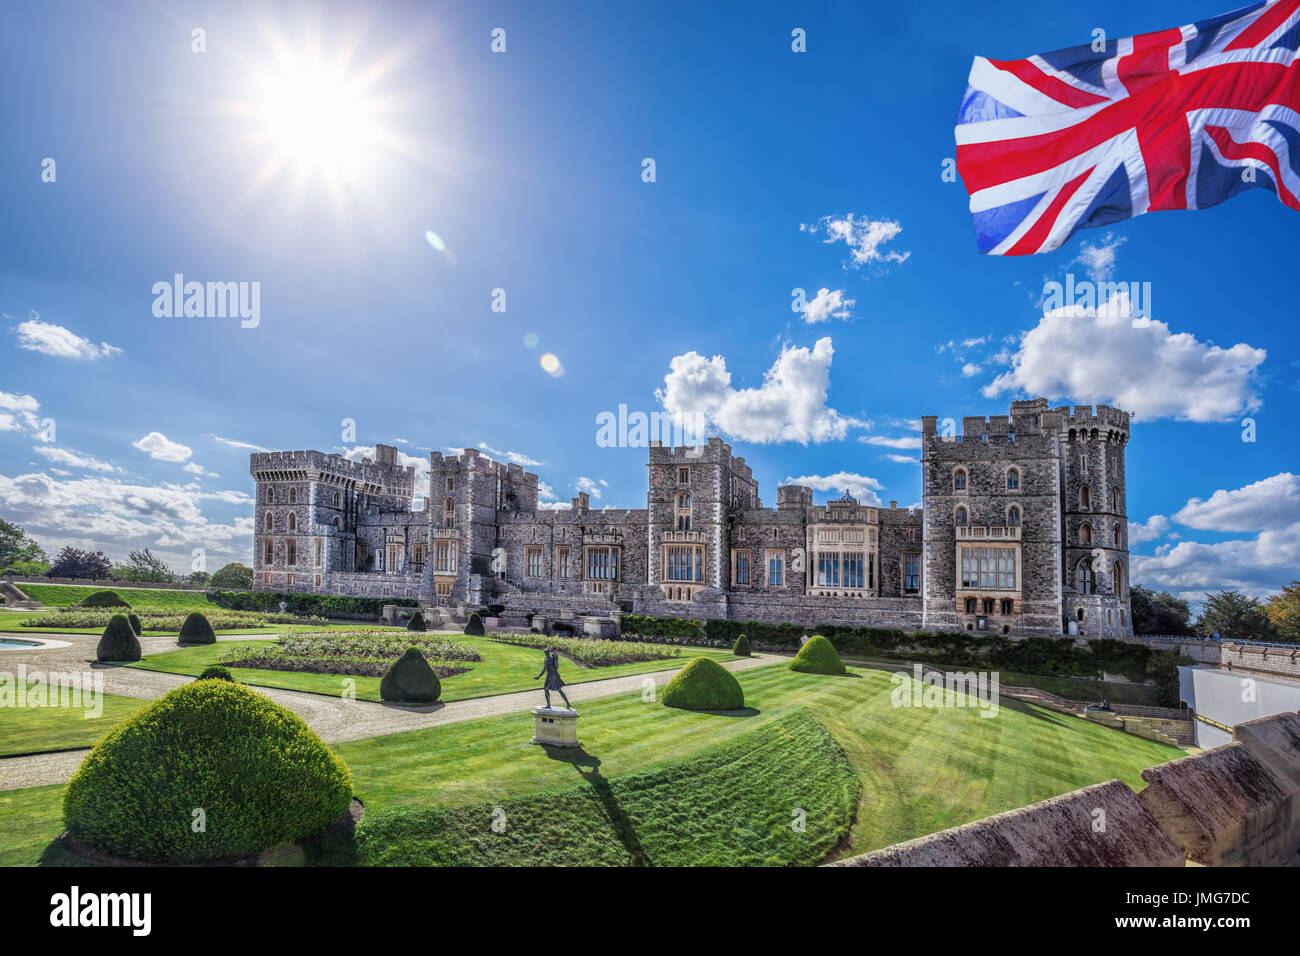 Windsor castle with garden near London, United Kingdom - Stock Image